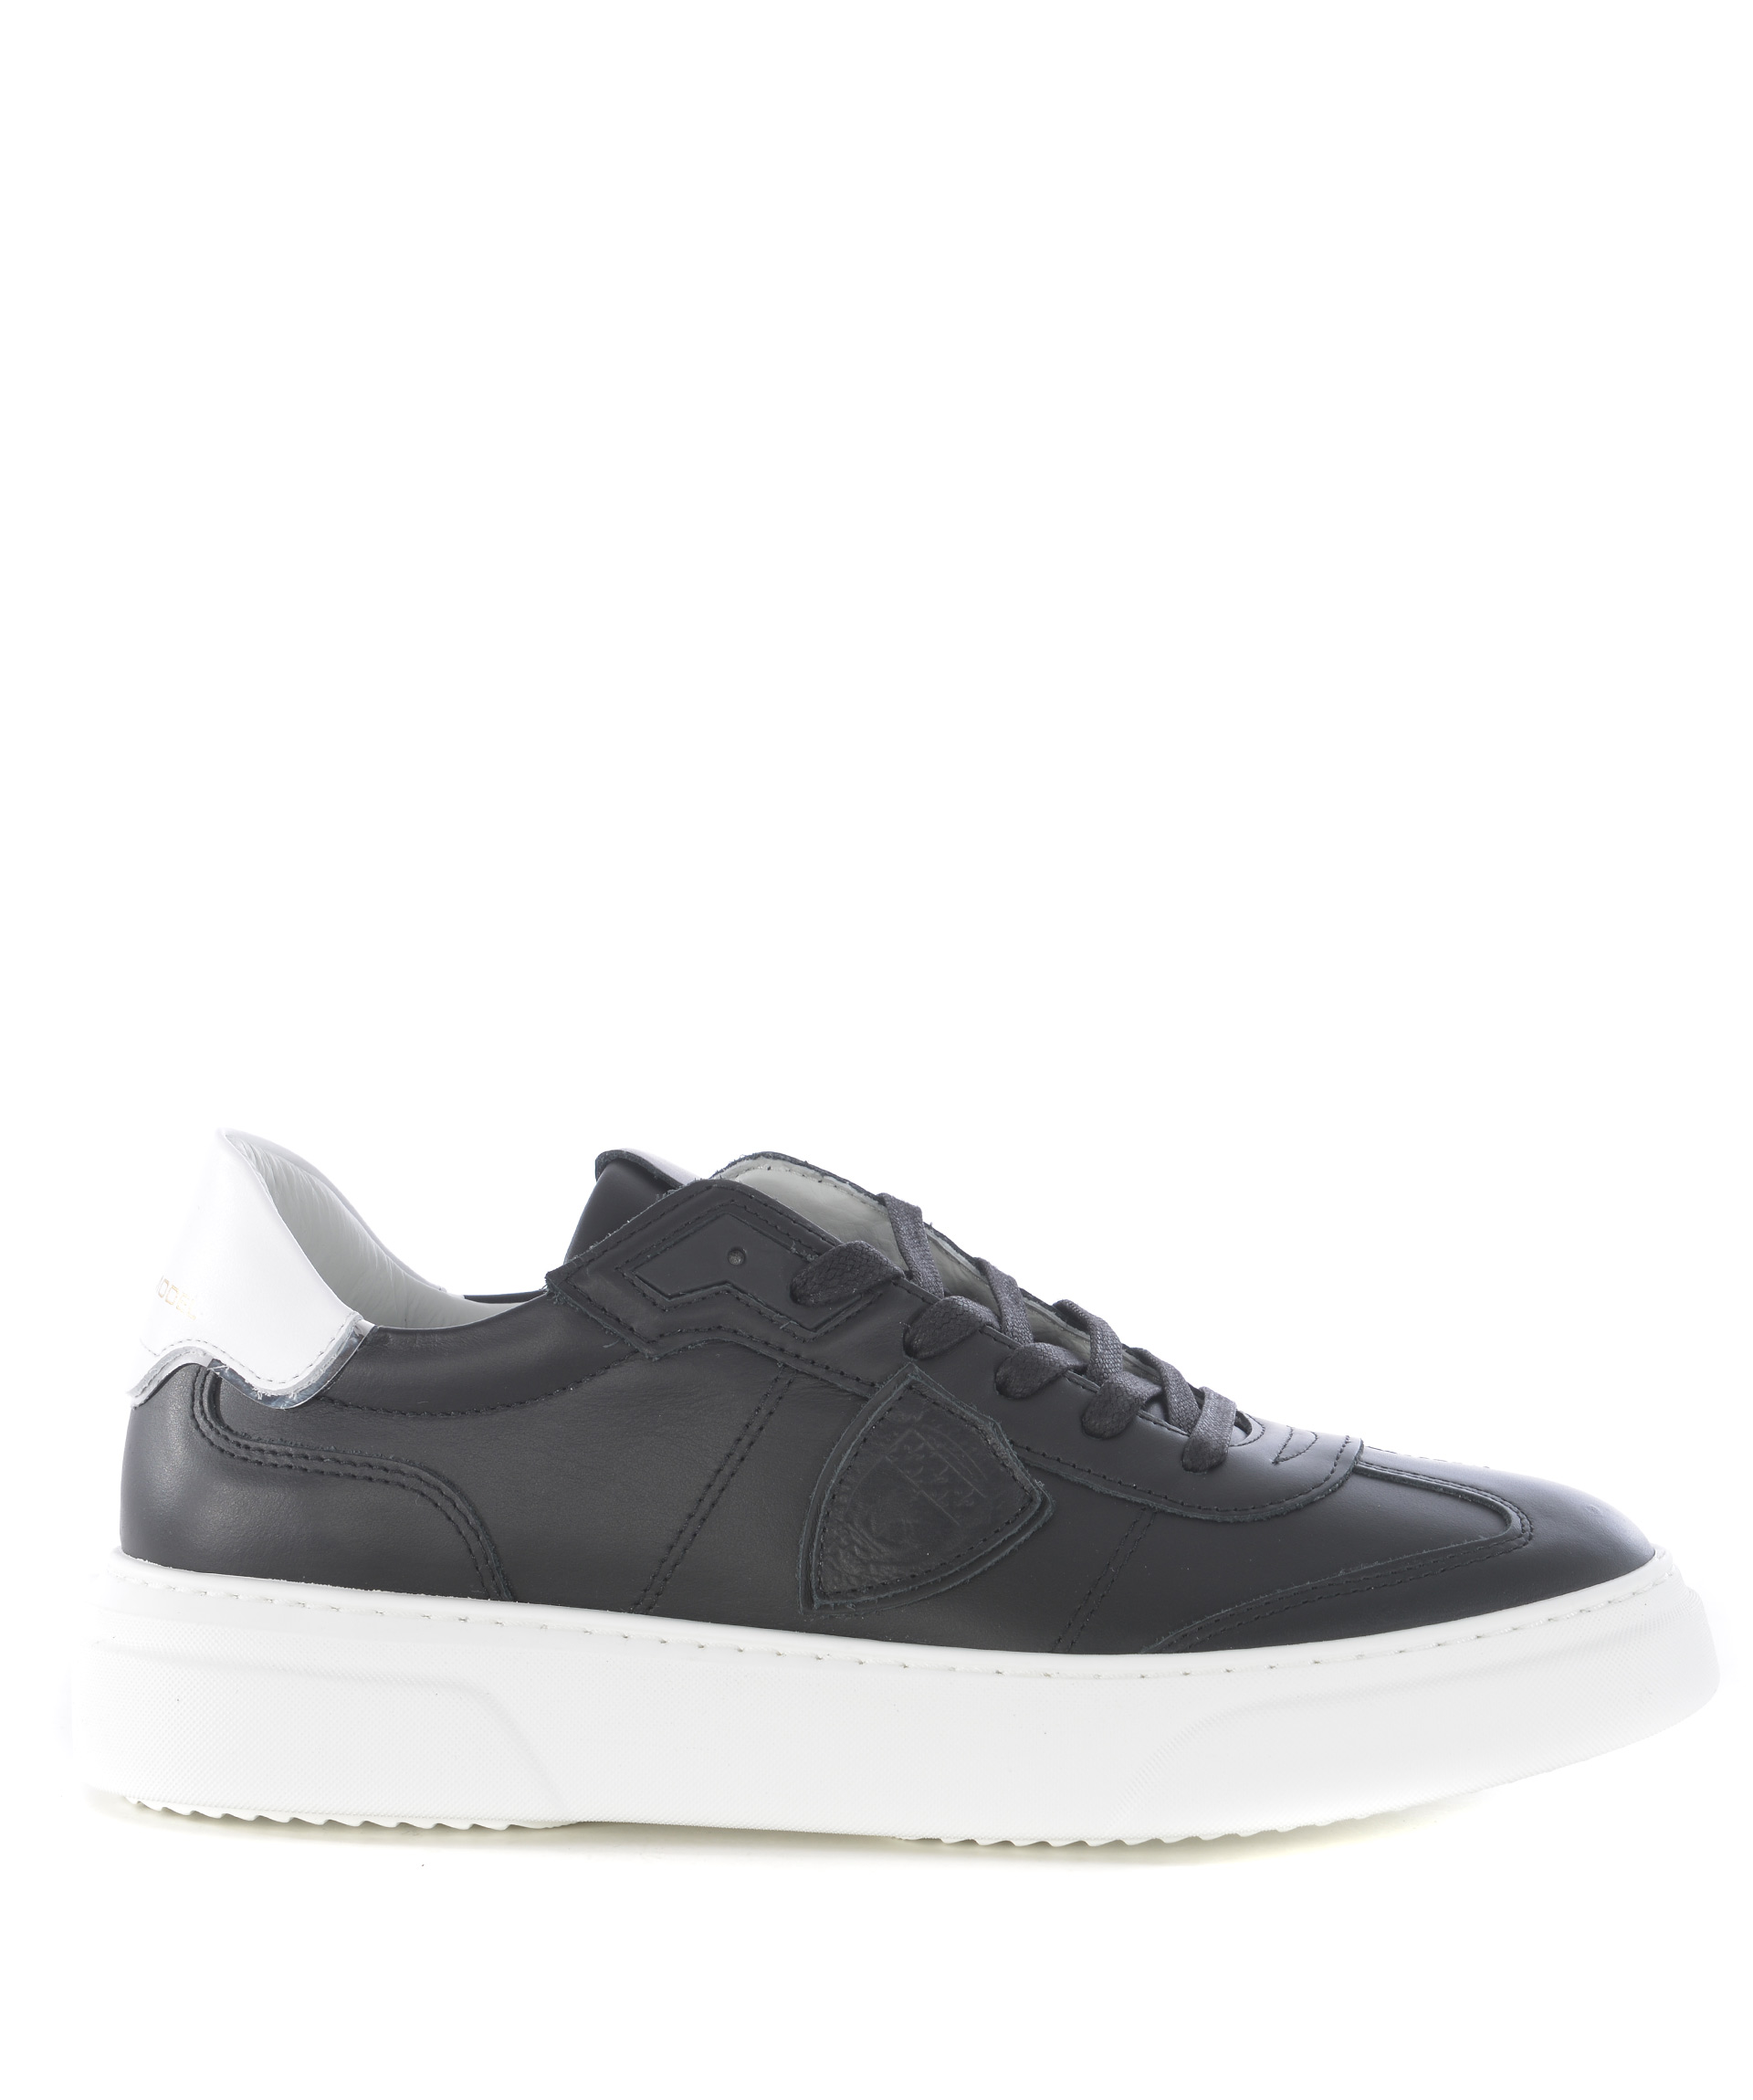 Sneakers uomo Philippe Model temple s low veau